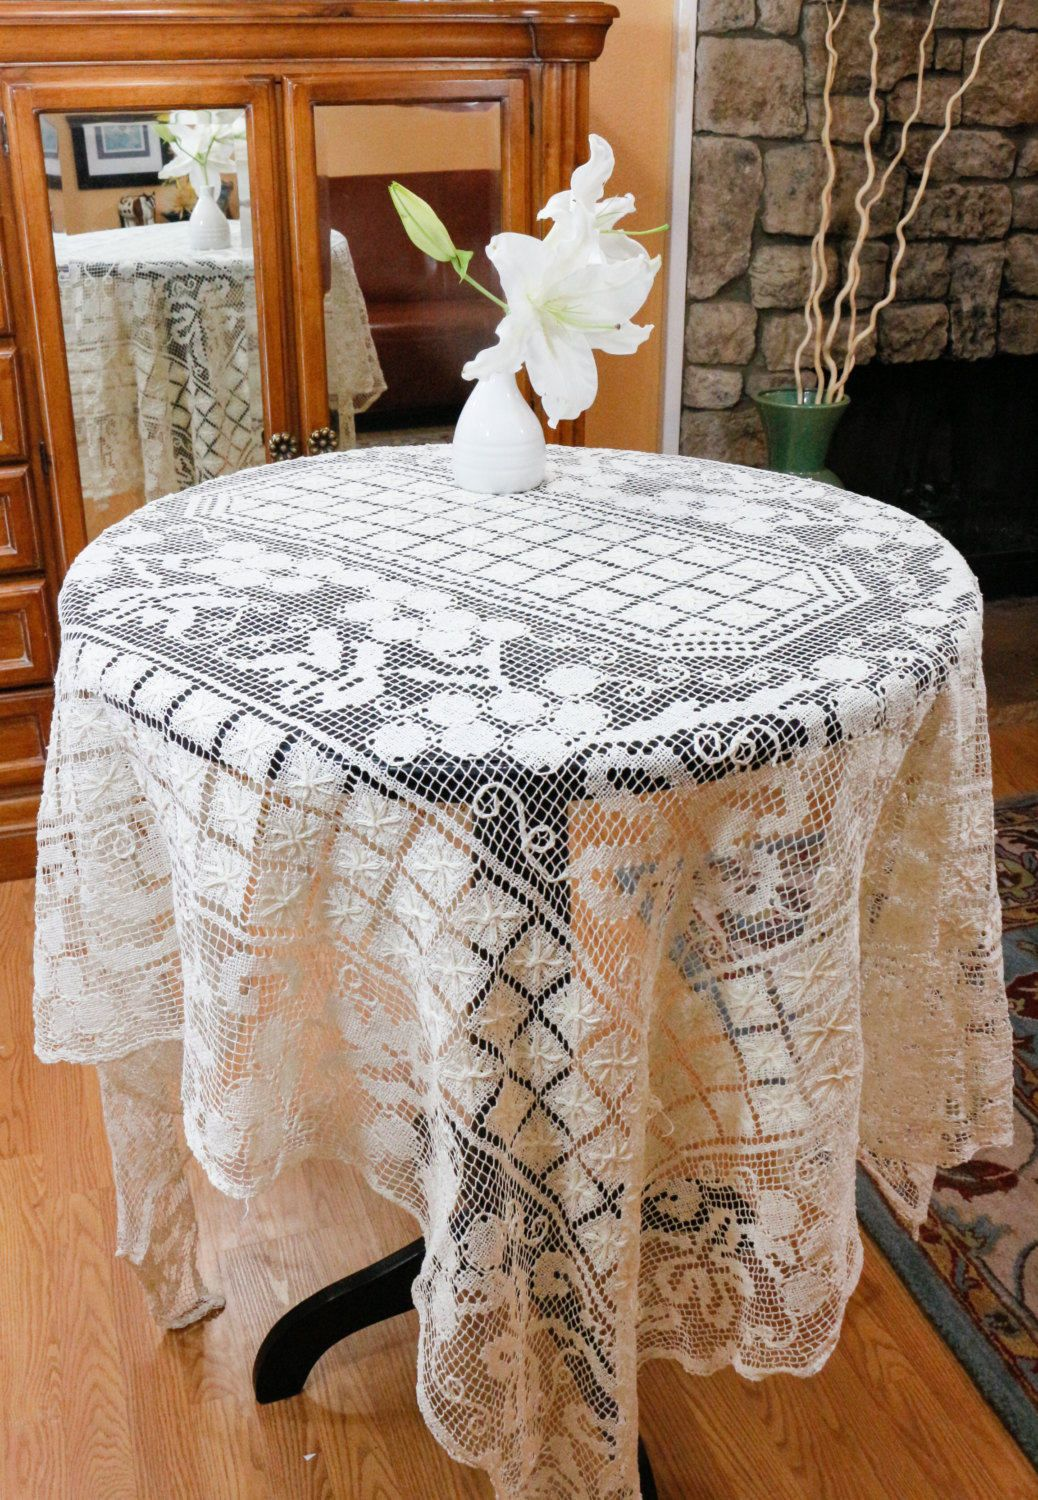 Lace Tablecloth Vintage Table Linens Italian Hand Knotted Lace